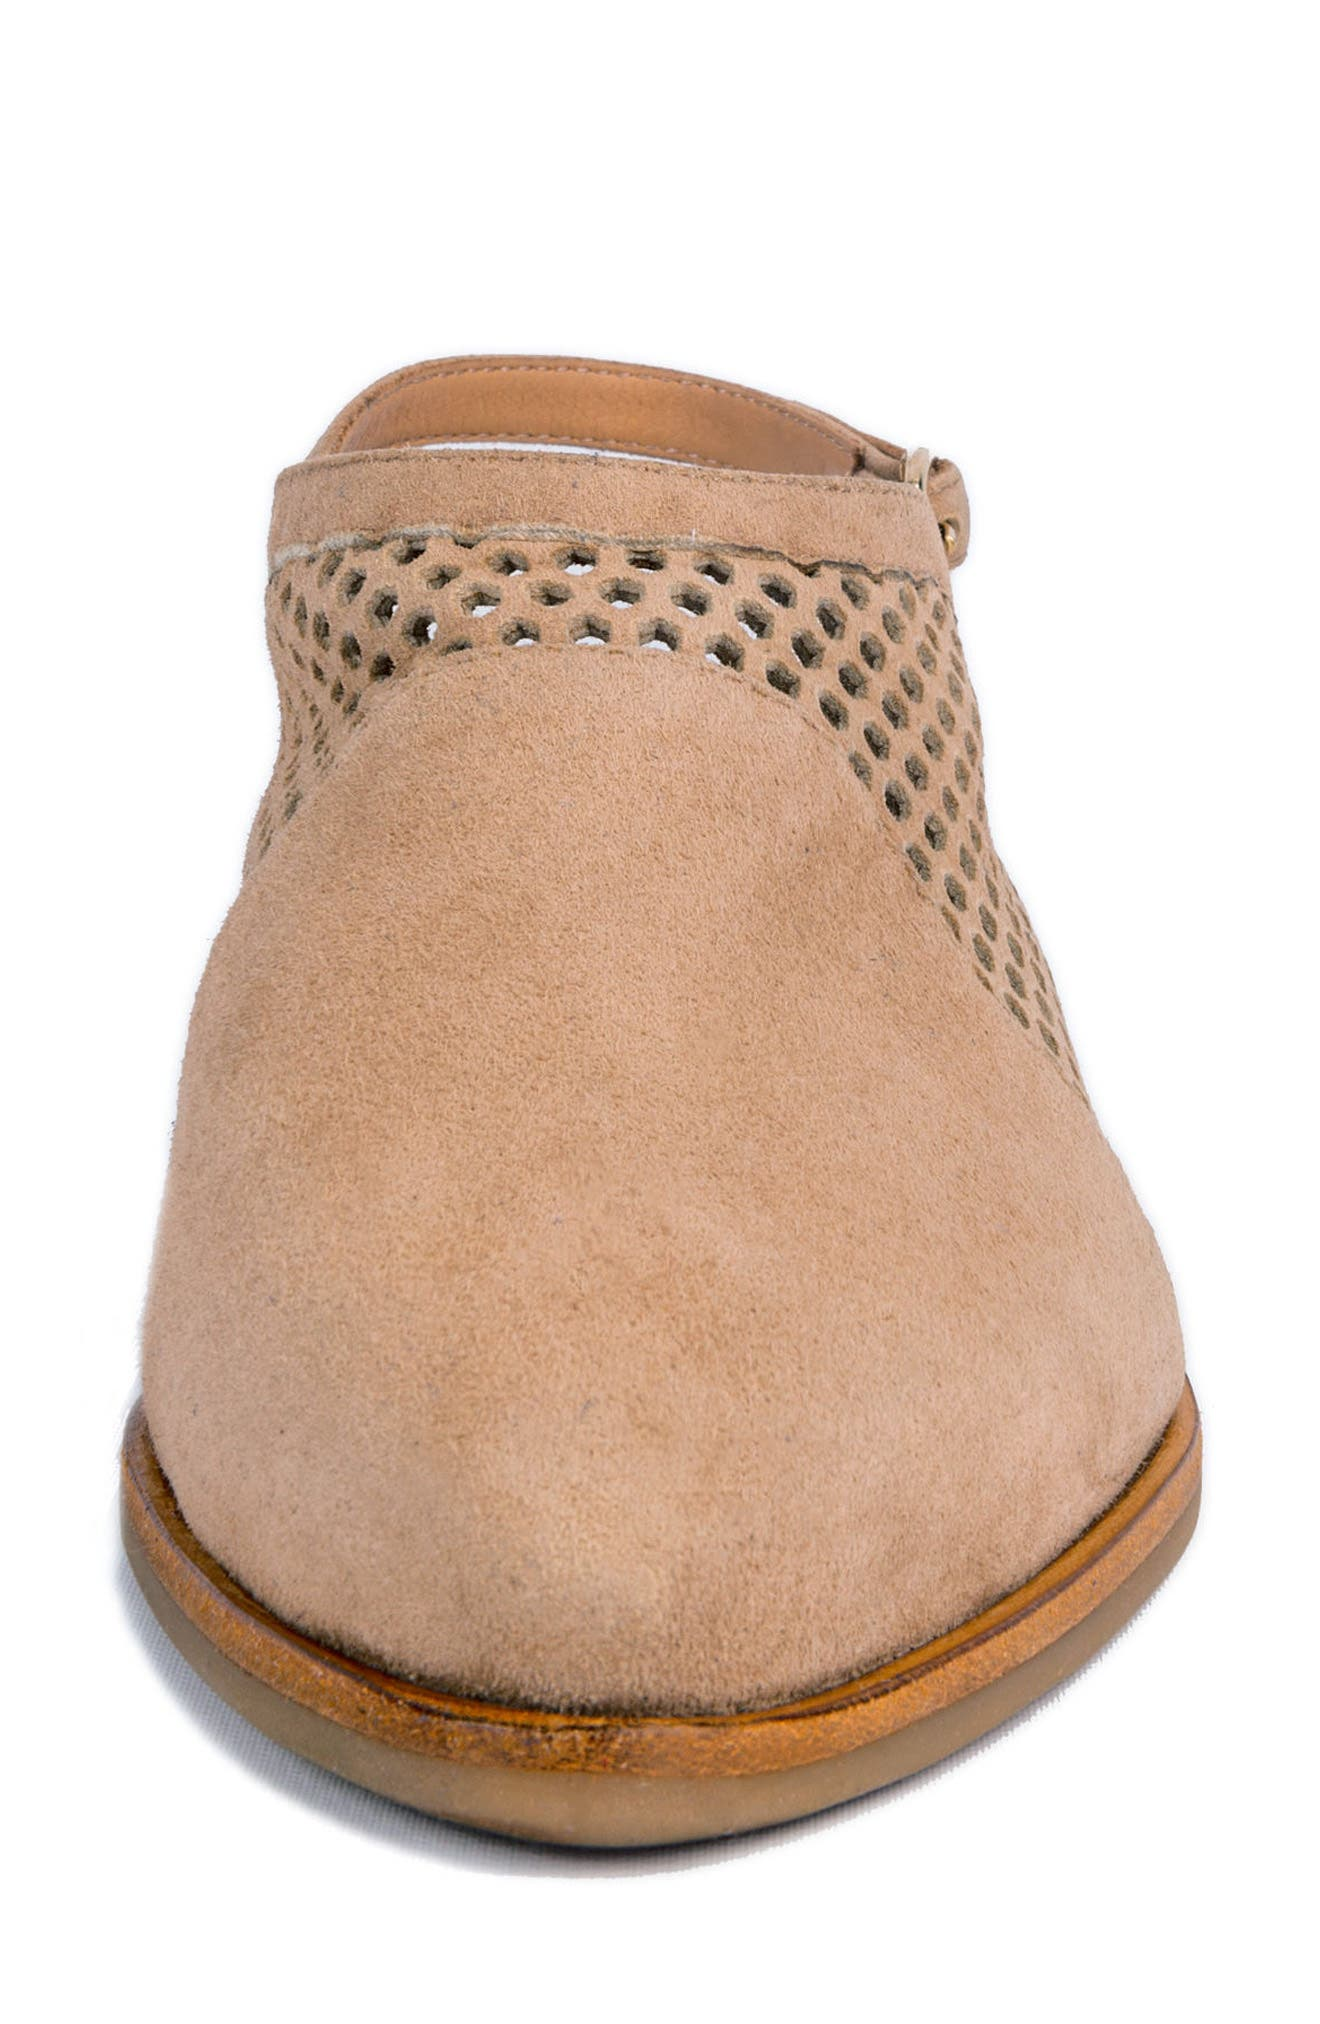 Toselli Water Resistant Slingback Bootie,                             Alternate thumbnail 4, color,                             Sand